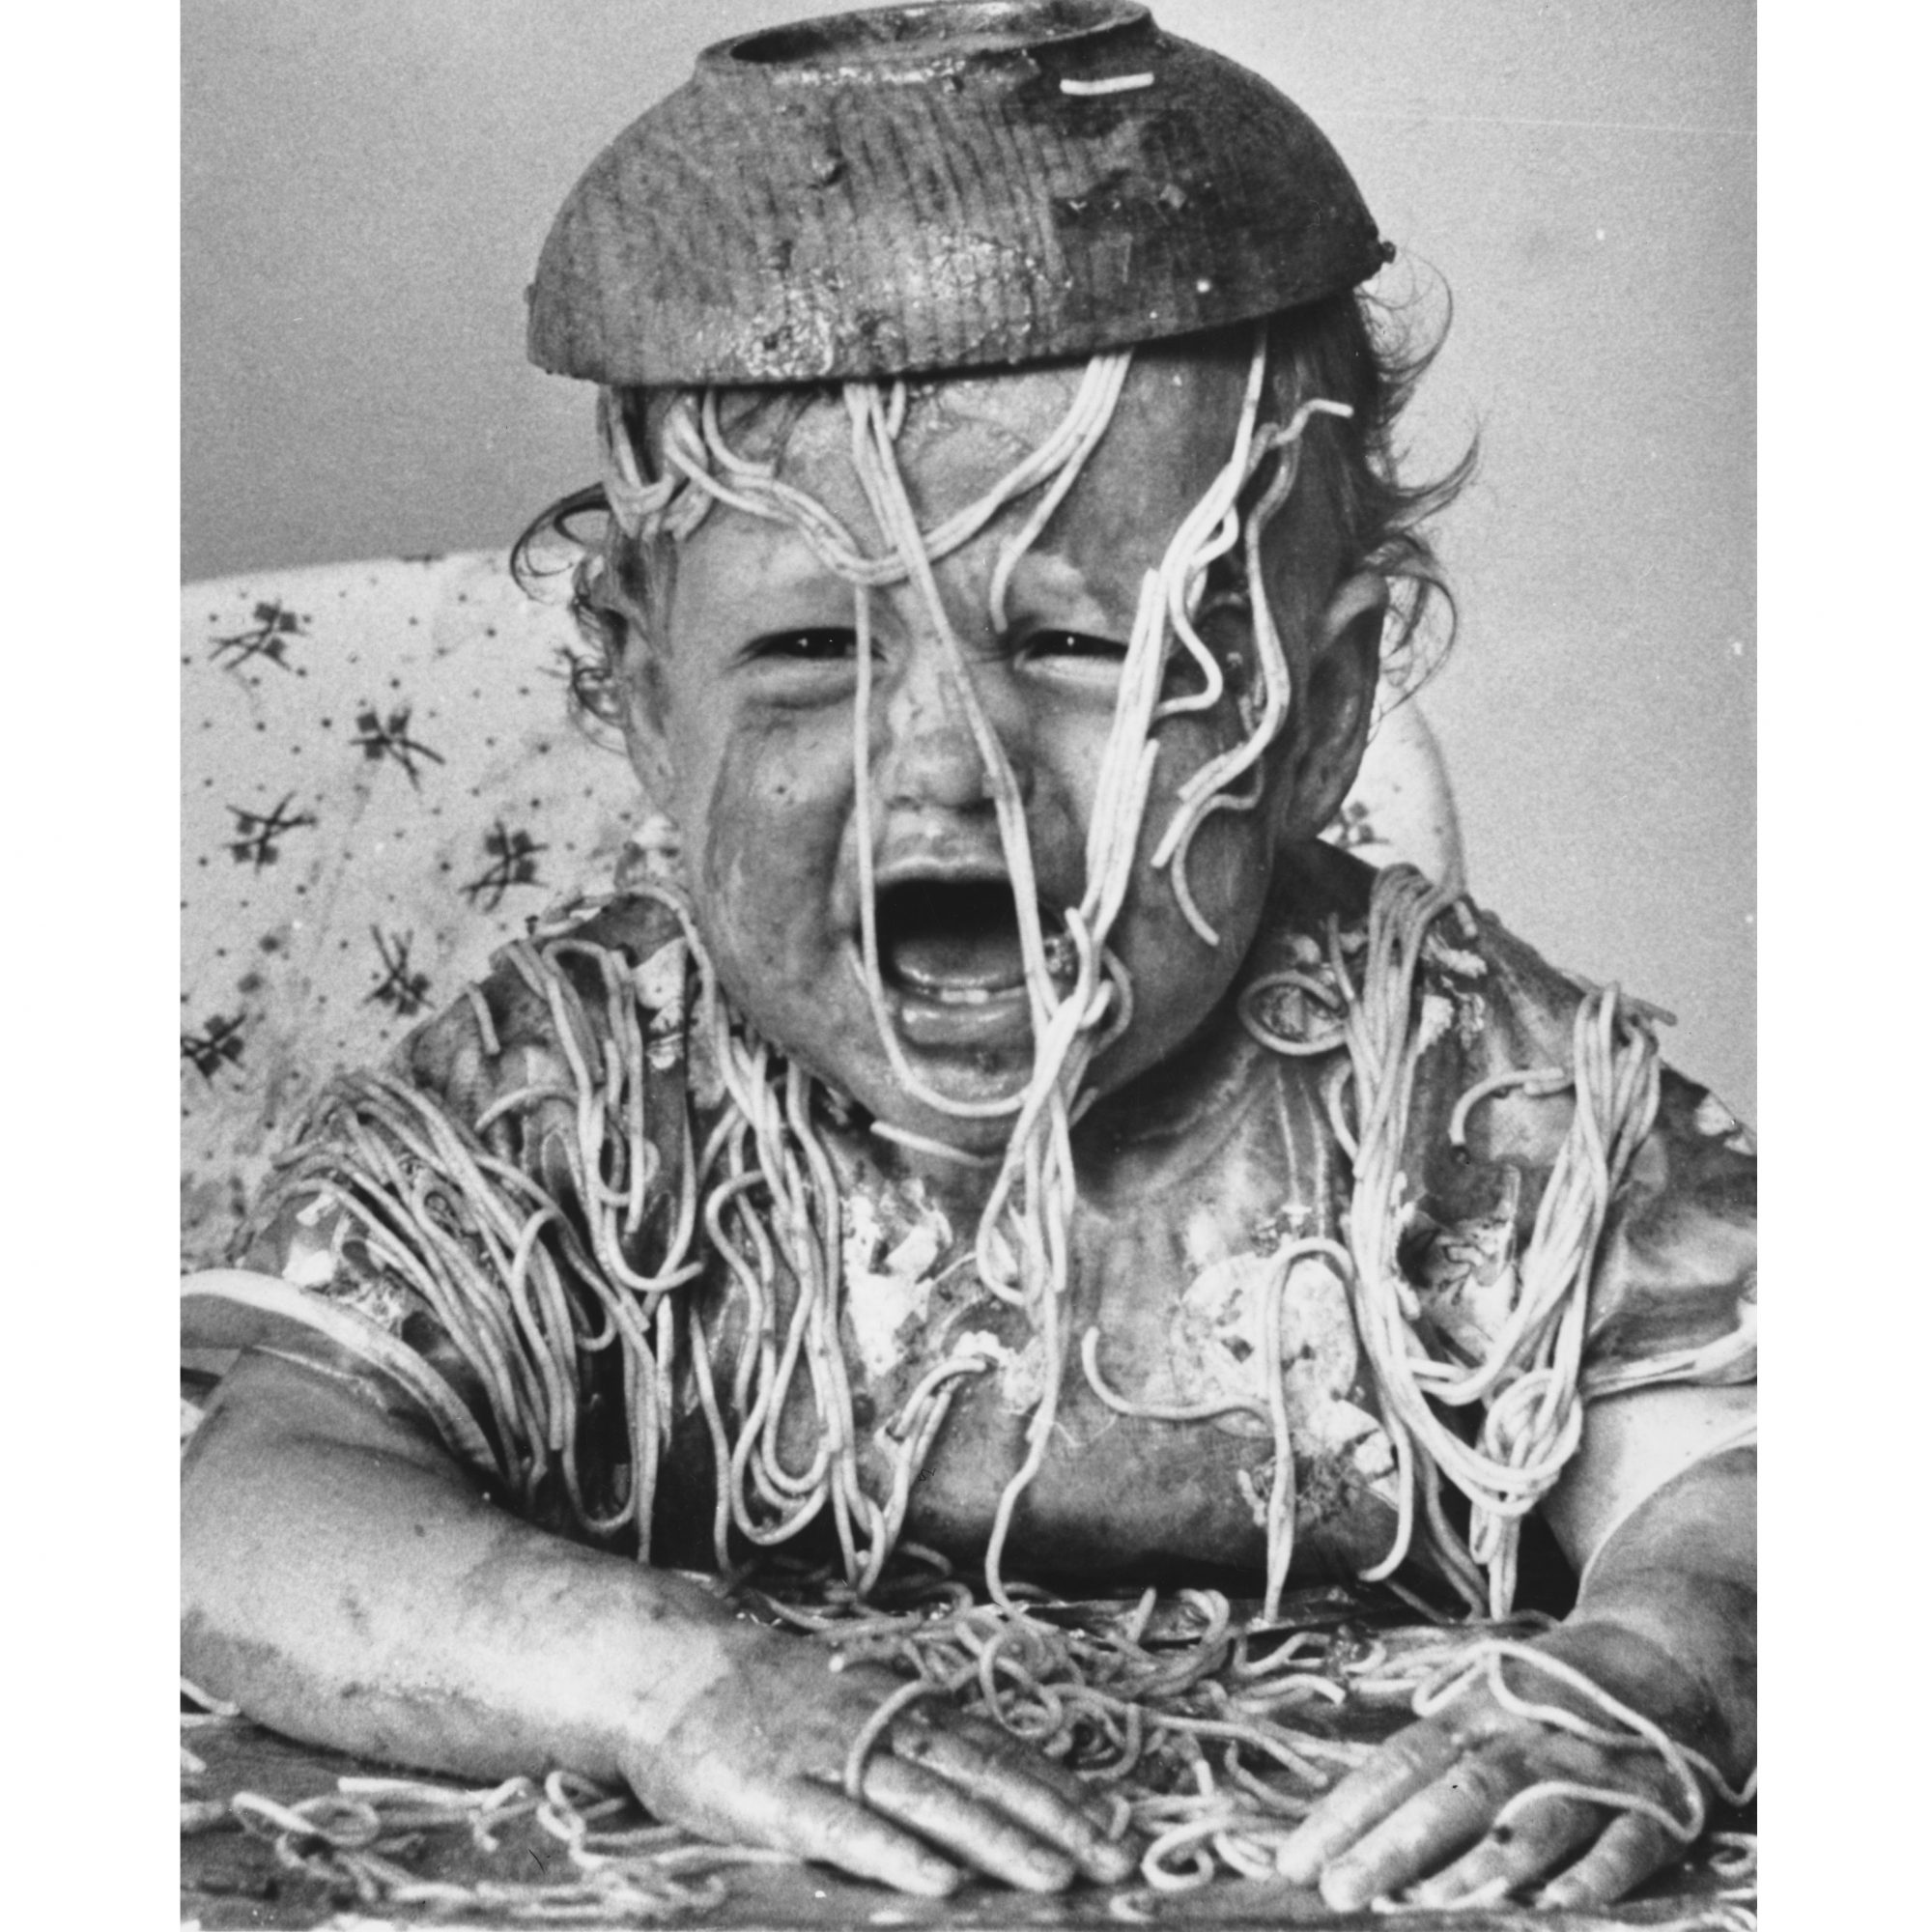 A child with a bowl of spaghetti on their head